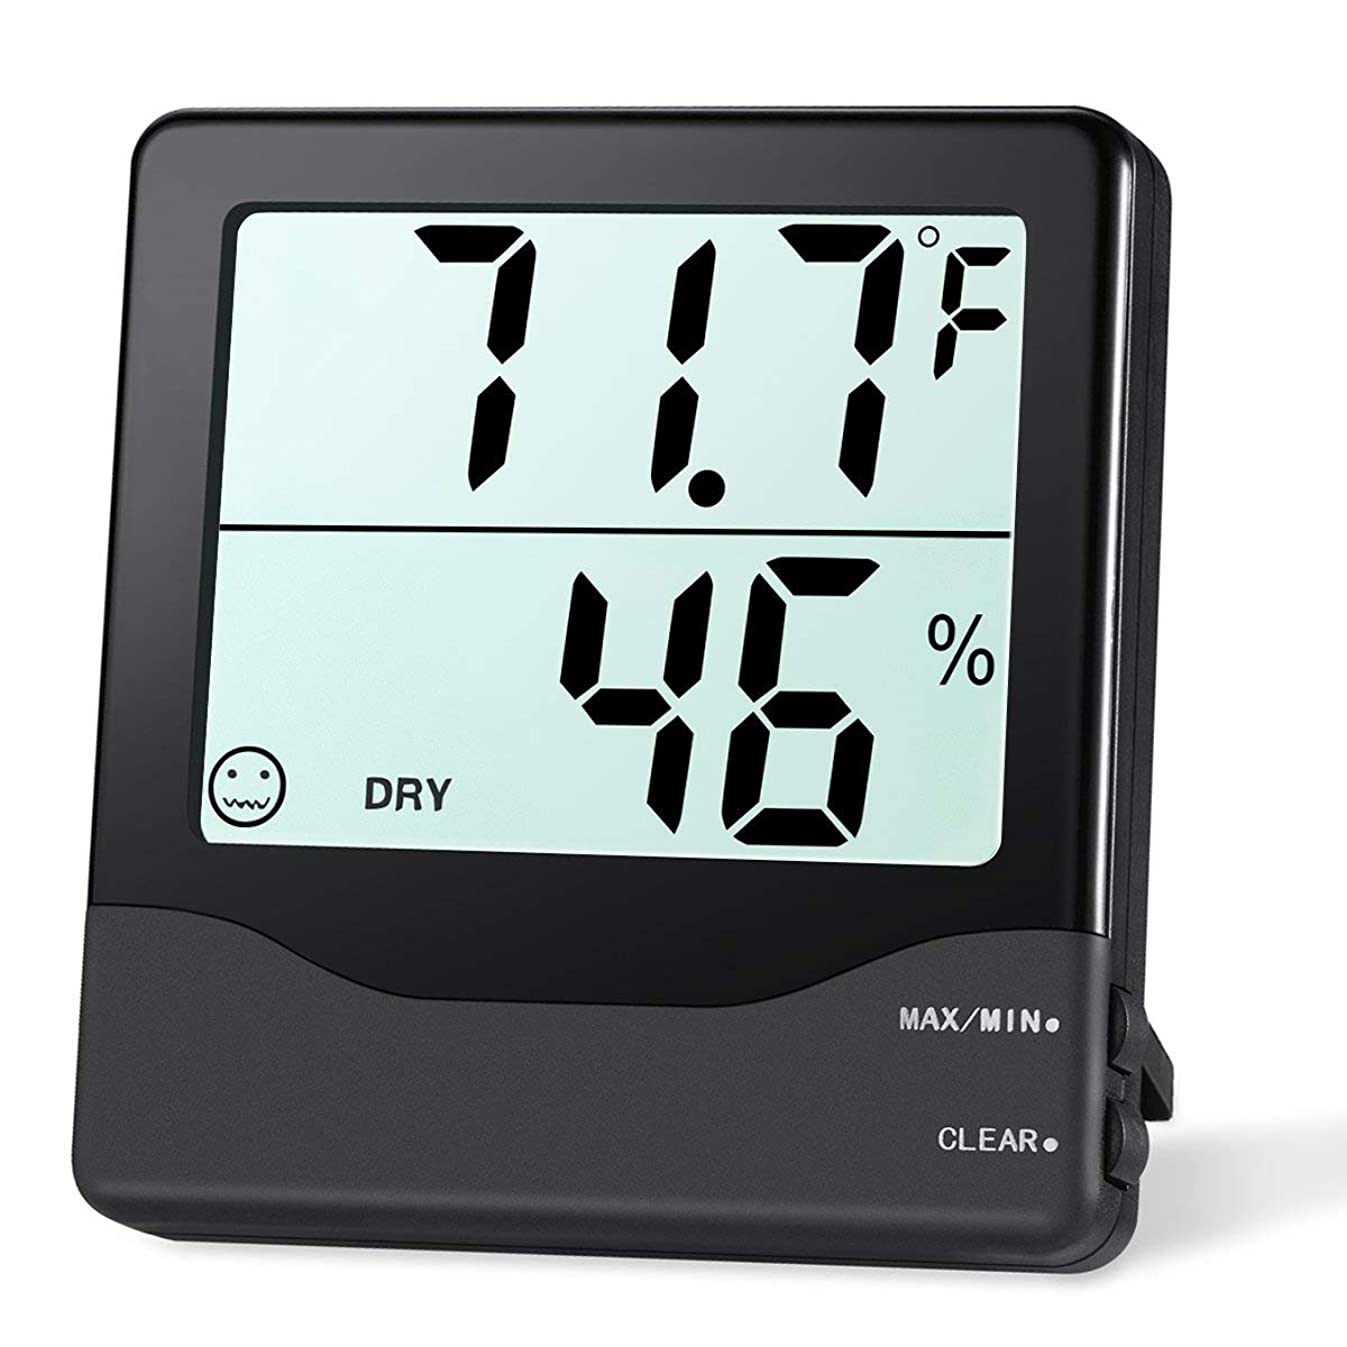 ORIA Digital Hygrometer Thermometer, Indoor Thermometer Humidity Monitor, Temperature Humidity Gauge Meter, with Comfort Indicators, MIN/MAX Records, Switch, for Home, Office, Greenhouse, Room